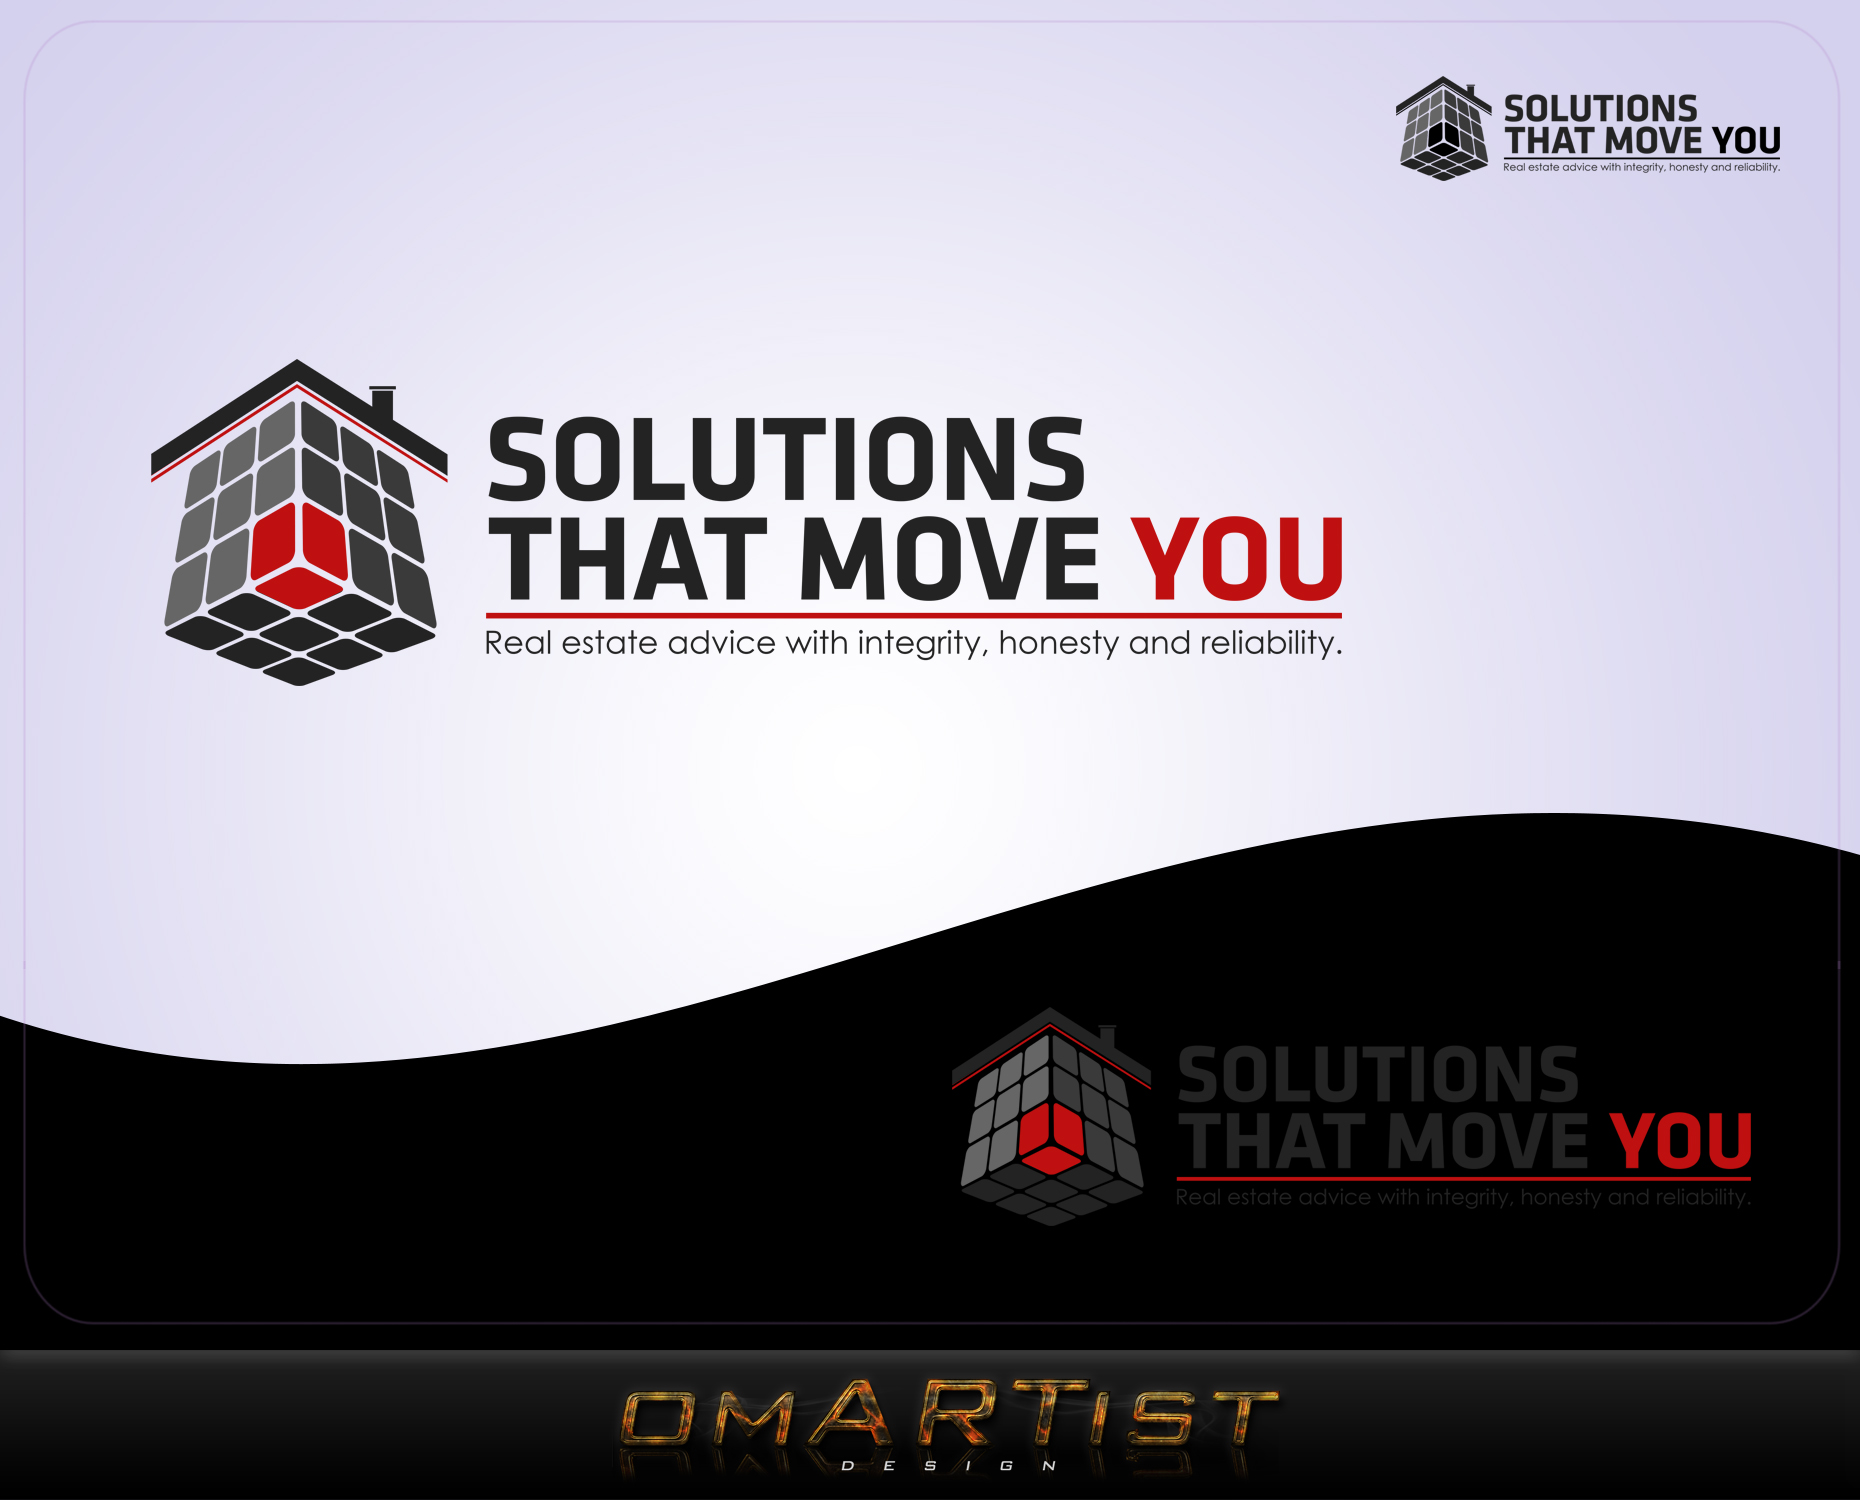 Logo Design by omARTist - Entry No. 95 in the Logo Design Contest Imaginative Logo Design for Solutions That Move You.